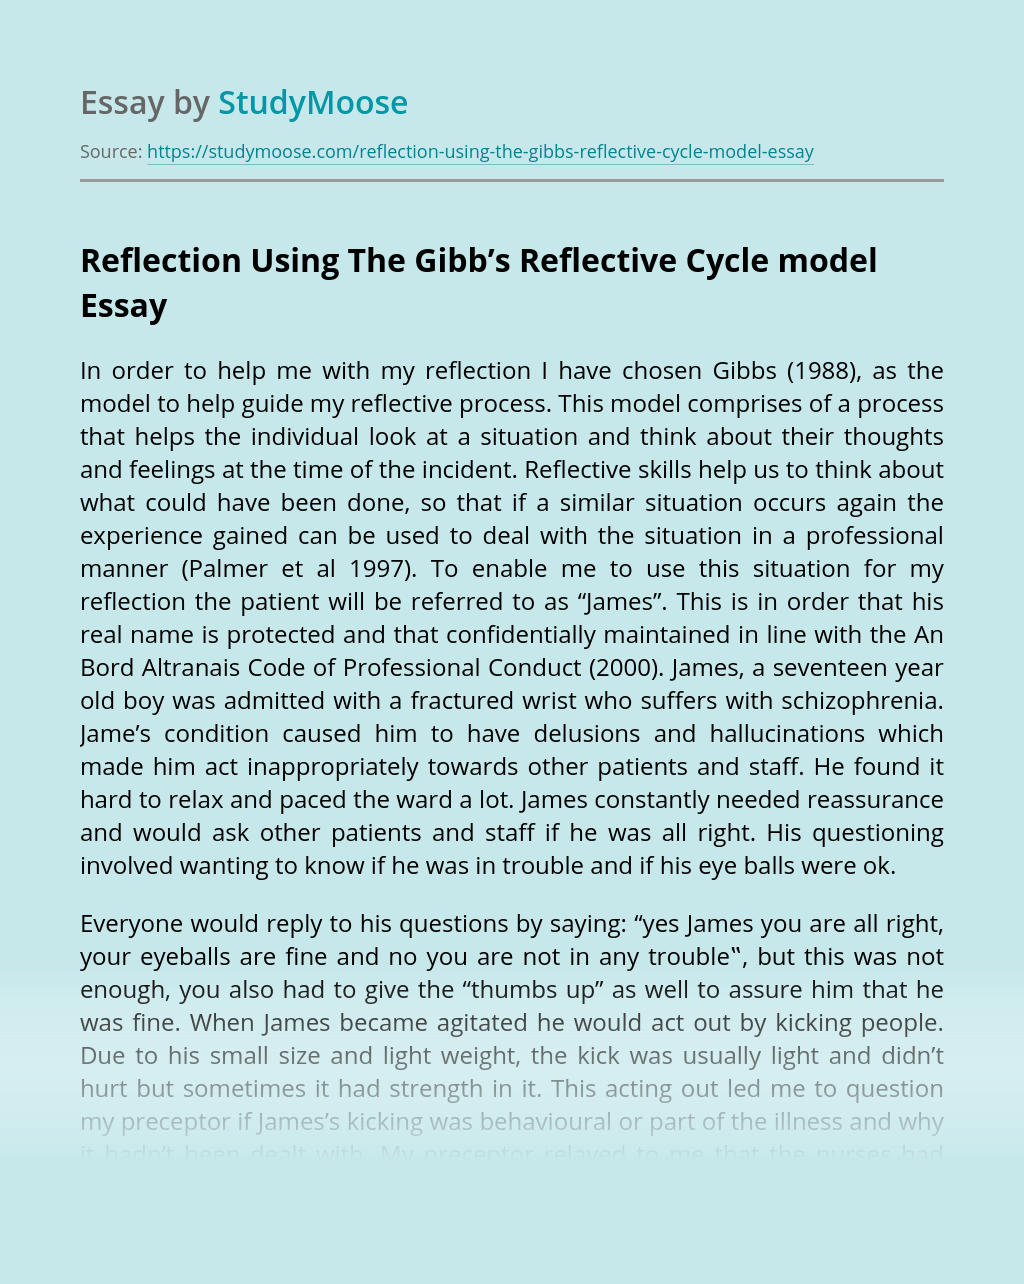 Reflection Using The Gibb's Reflective Cycle model